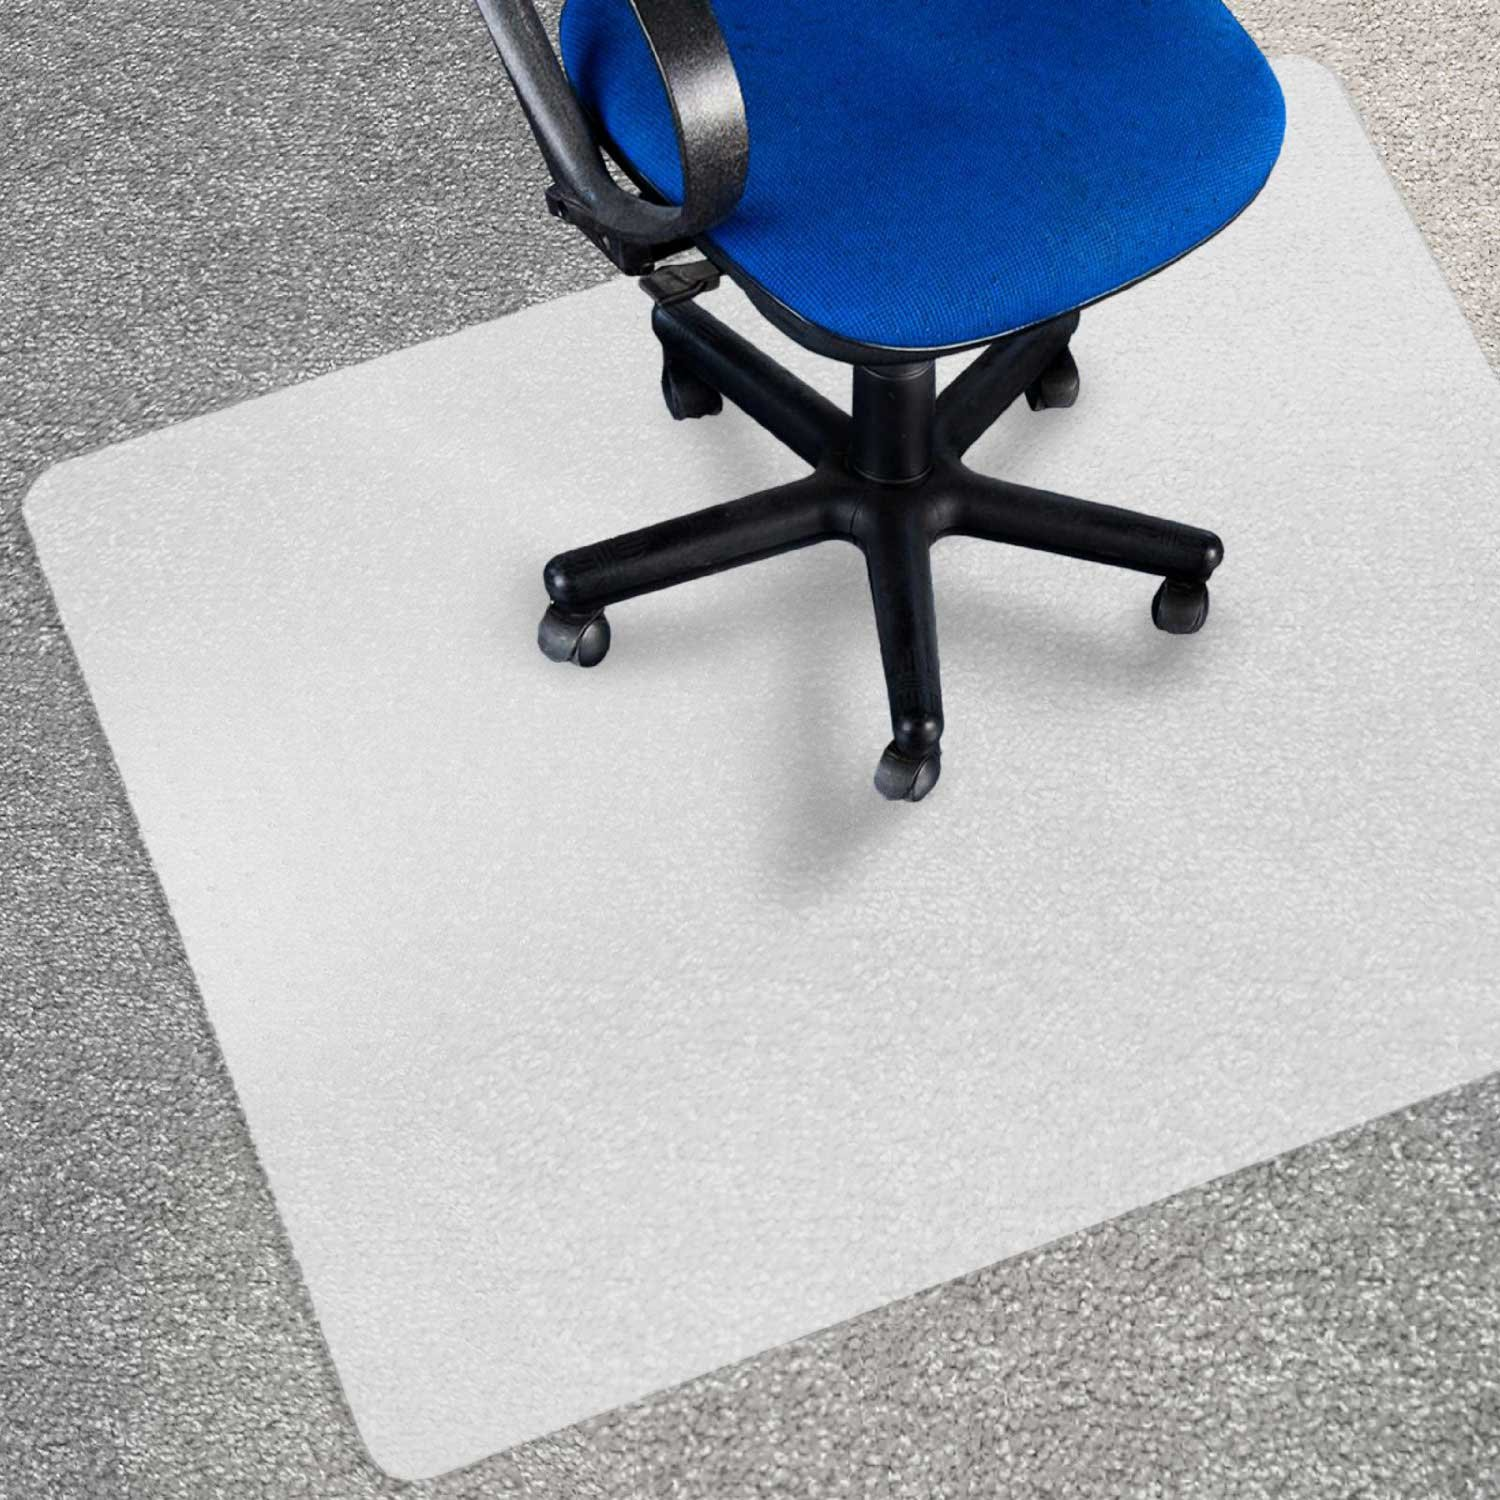 Amazon.com  Chair Mat for Carpets | Low / Medium Pile Computer Chair Floor Protector for Office and Home | Opaque Studded | Polypropylene | 36 x48  ... & Amazon.com : Chair Mat for Carpets | Low / Medium Pile Computer ...